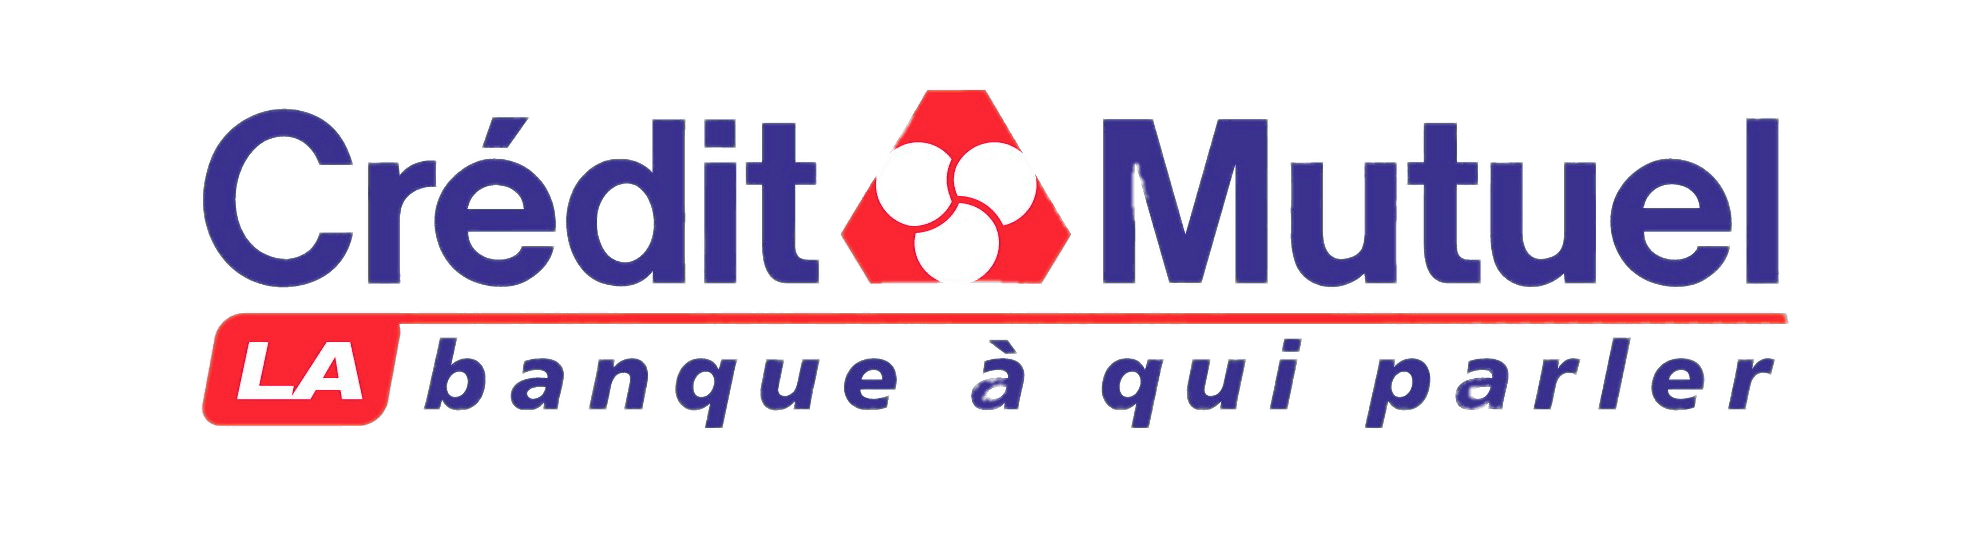 Credit Mutuel